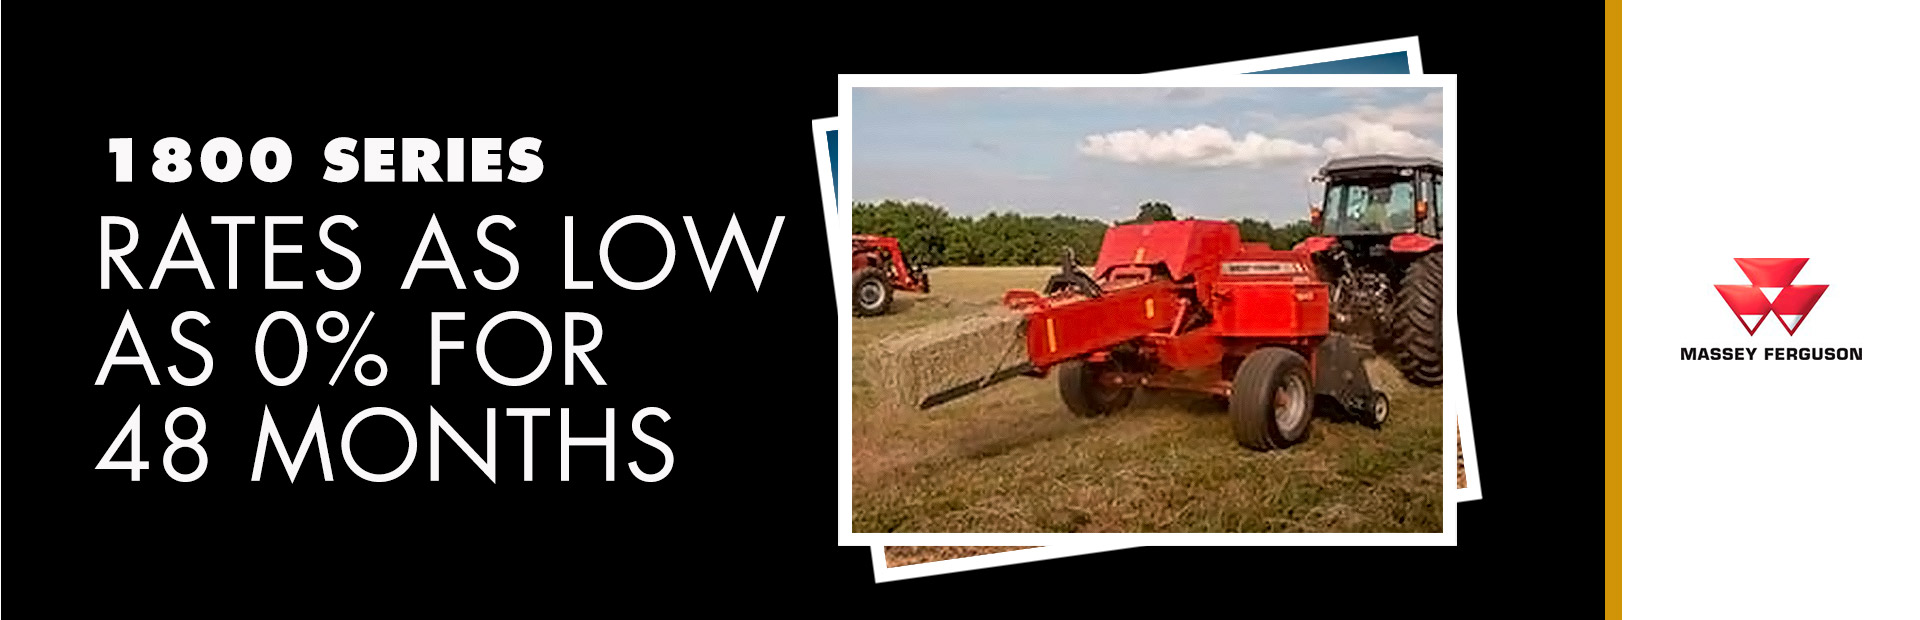 Massey Ferguson: 1800 Series - Rates as low as 0% for 48 Months